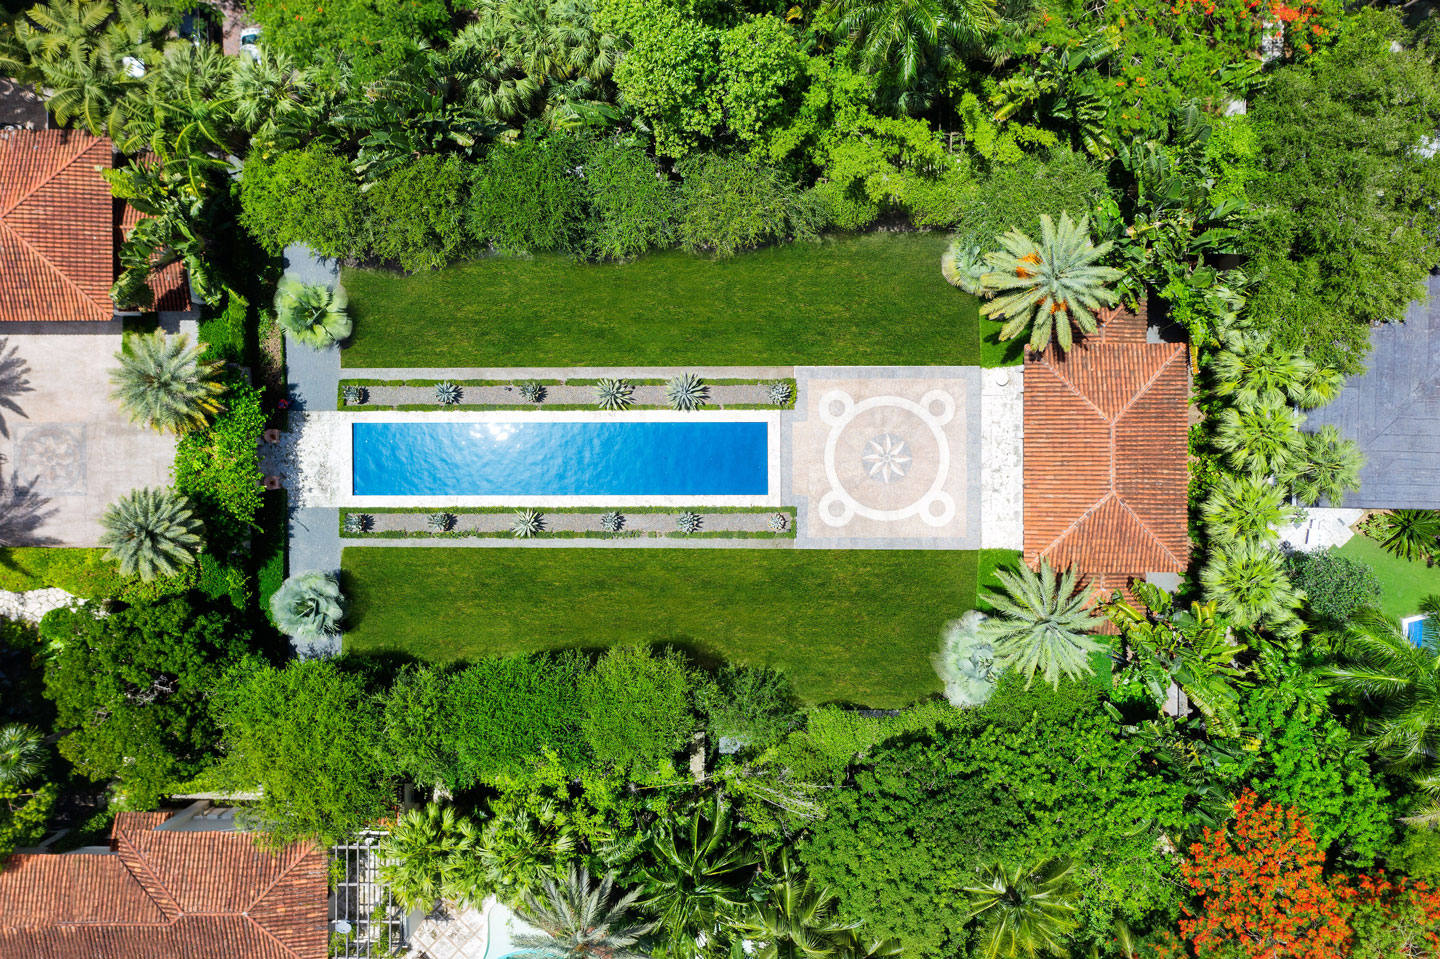 3725 Leafy Way, Coconut Grove, Miami, Florida, USA | A Pool | Listed by Dennis Carvajal, Real Estate Agent, ONE Sotheby's International Realty | Finest Residences